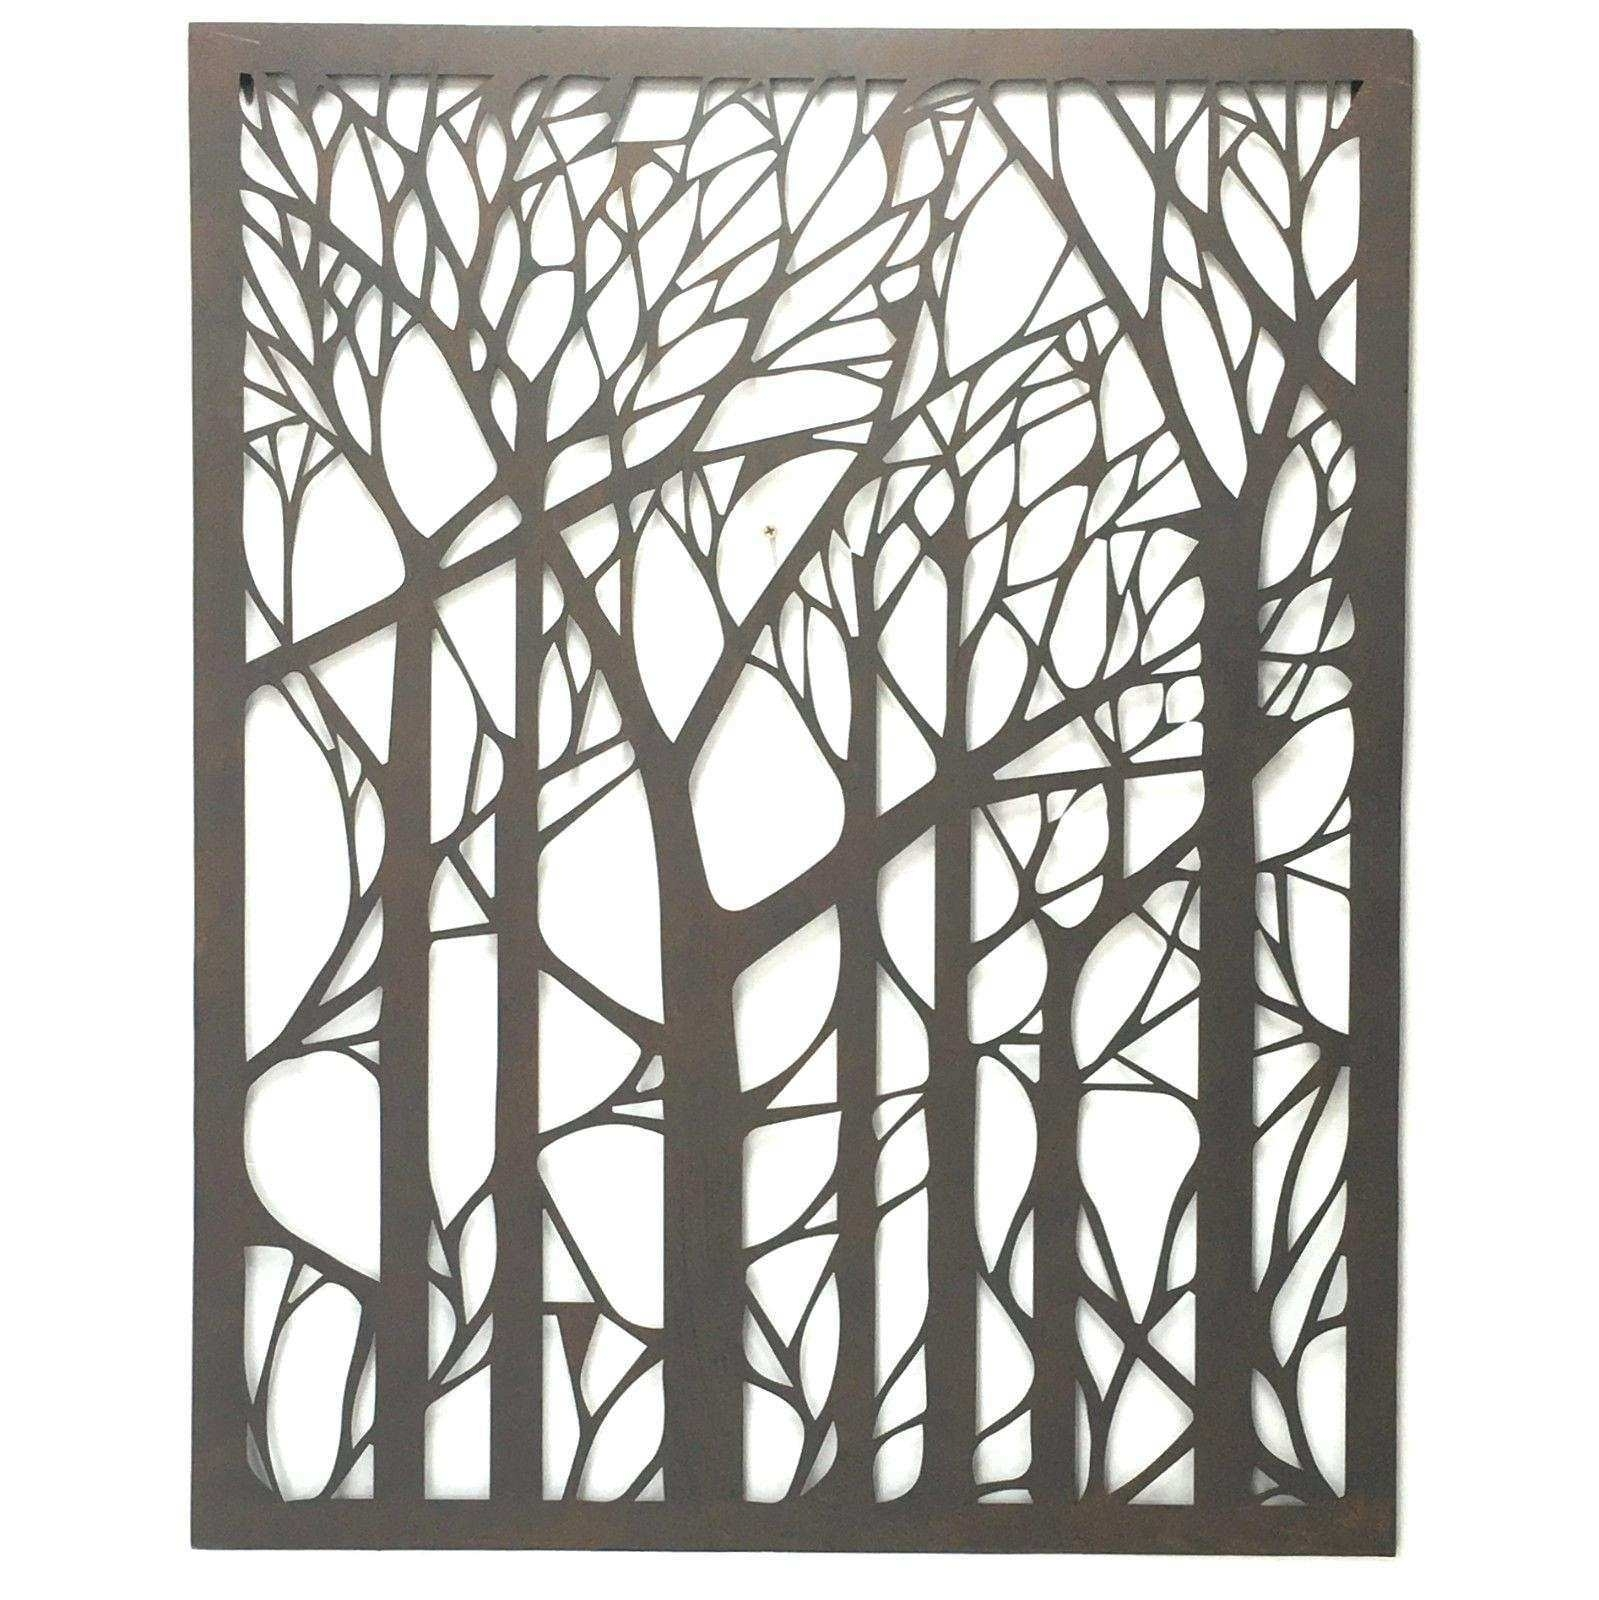 Large Outdoor Wall Decor Awesome 20 Best Metal Wall Art For Outdoors intended for Outdoor Wall Art (Image 8 of 20)